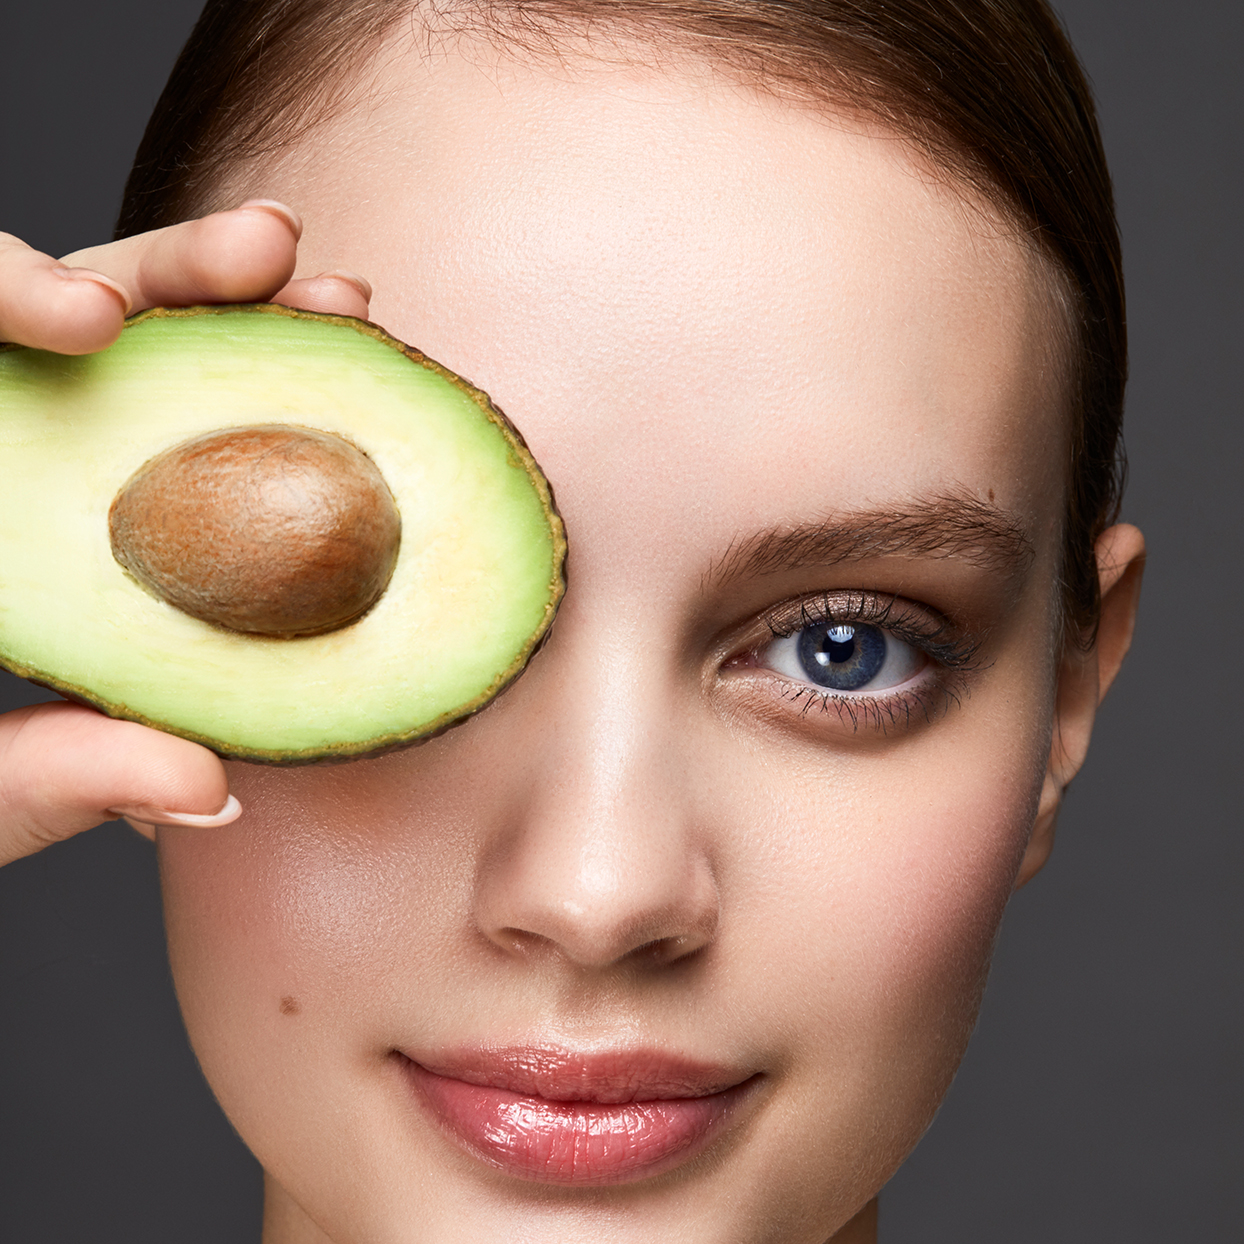 10 Surprising Foods That Cause Acne